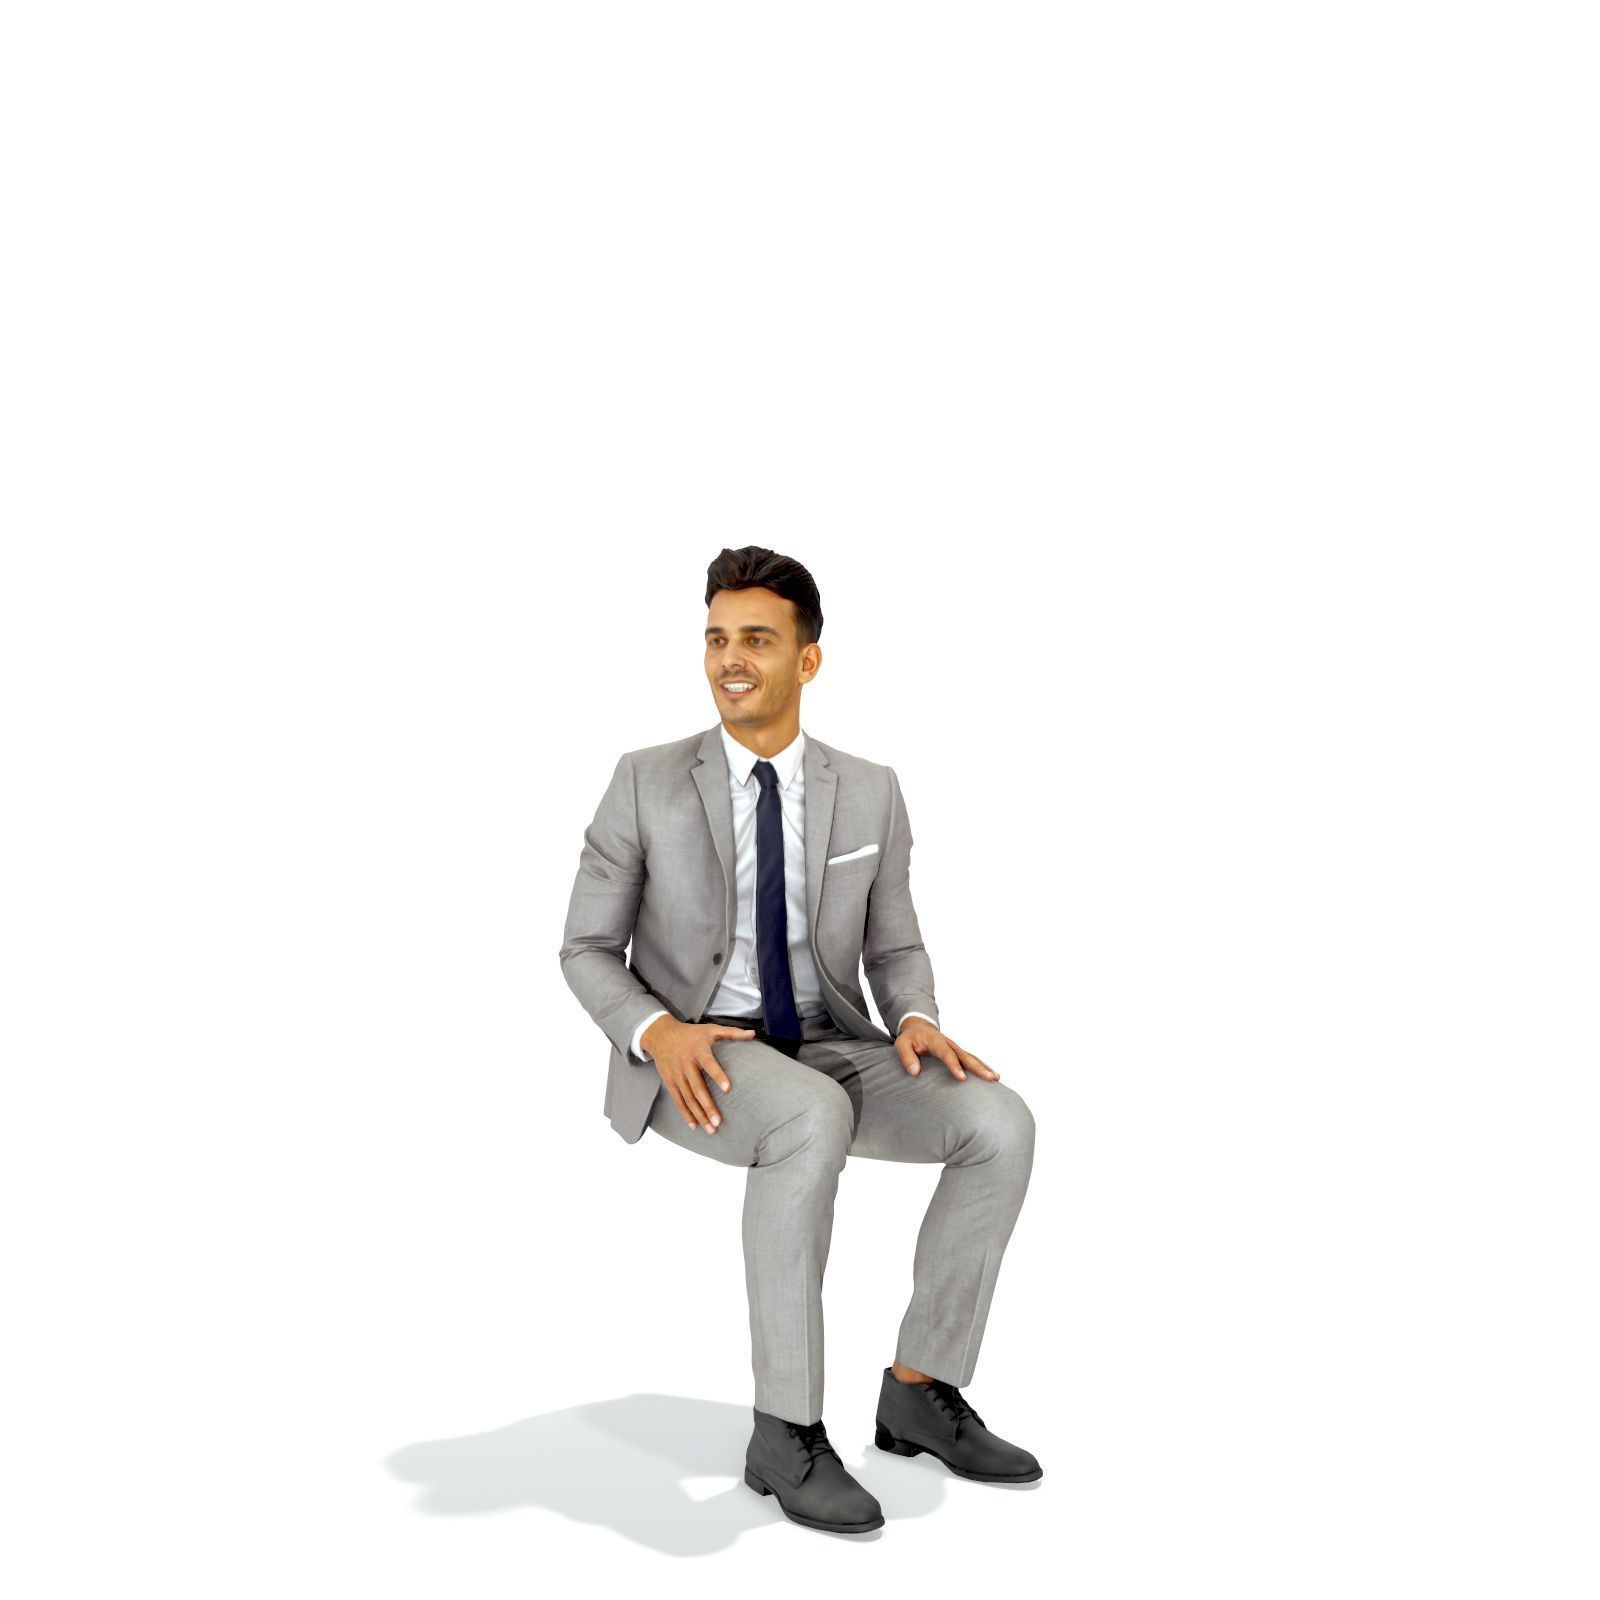 Sitting Business Man with Grey Suit BMan0314-HD2-O04P01-S